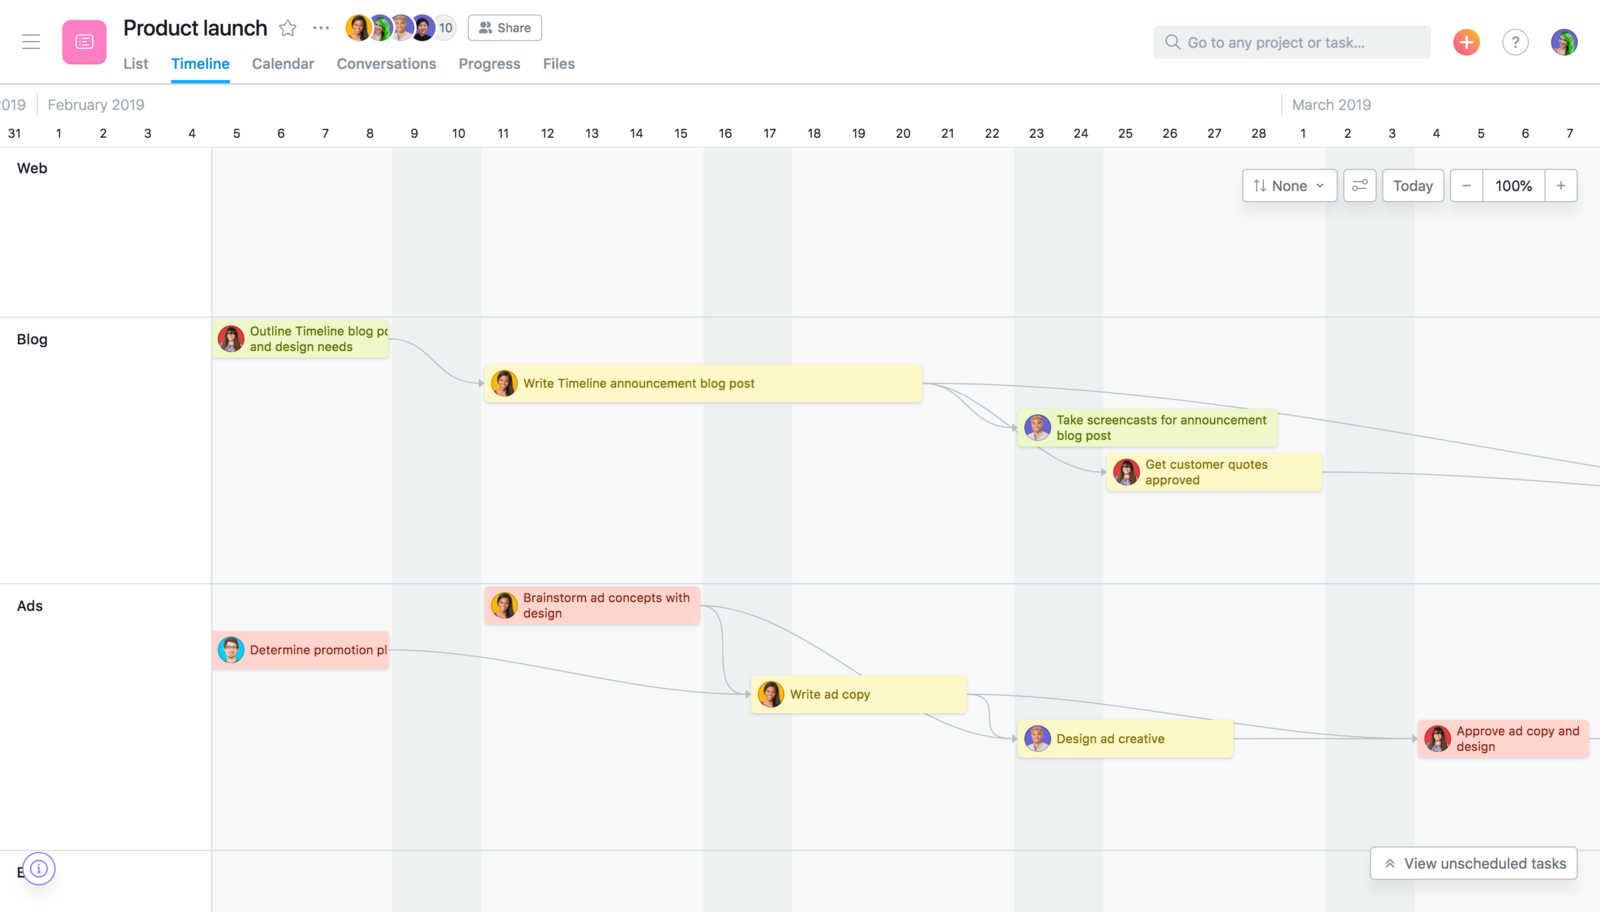 Timeline is a Gantt chart style view to help you plan, manage, visualize and share your project schedule—and ensure your schedule is realistic.